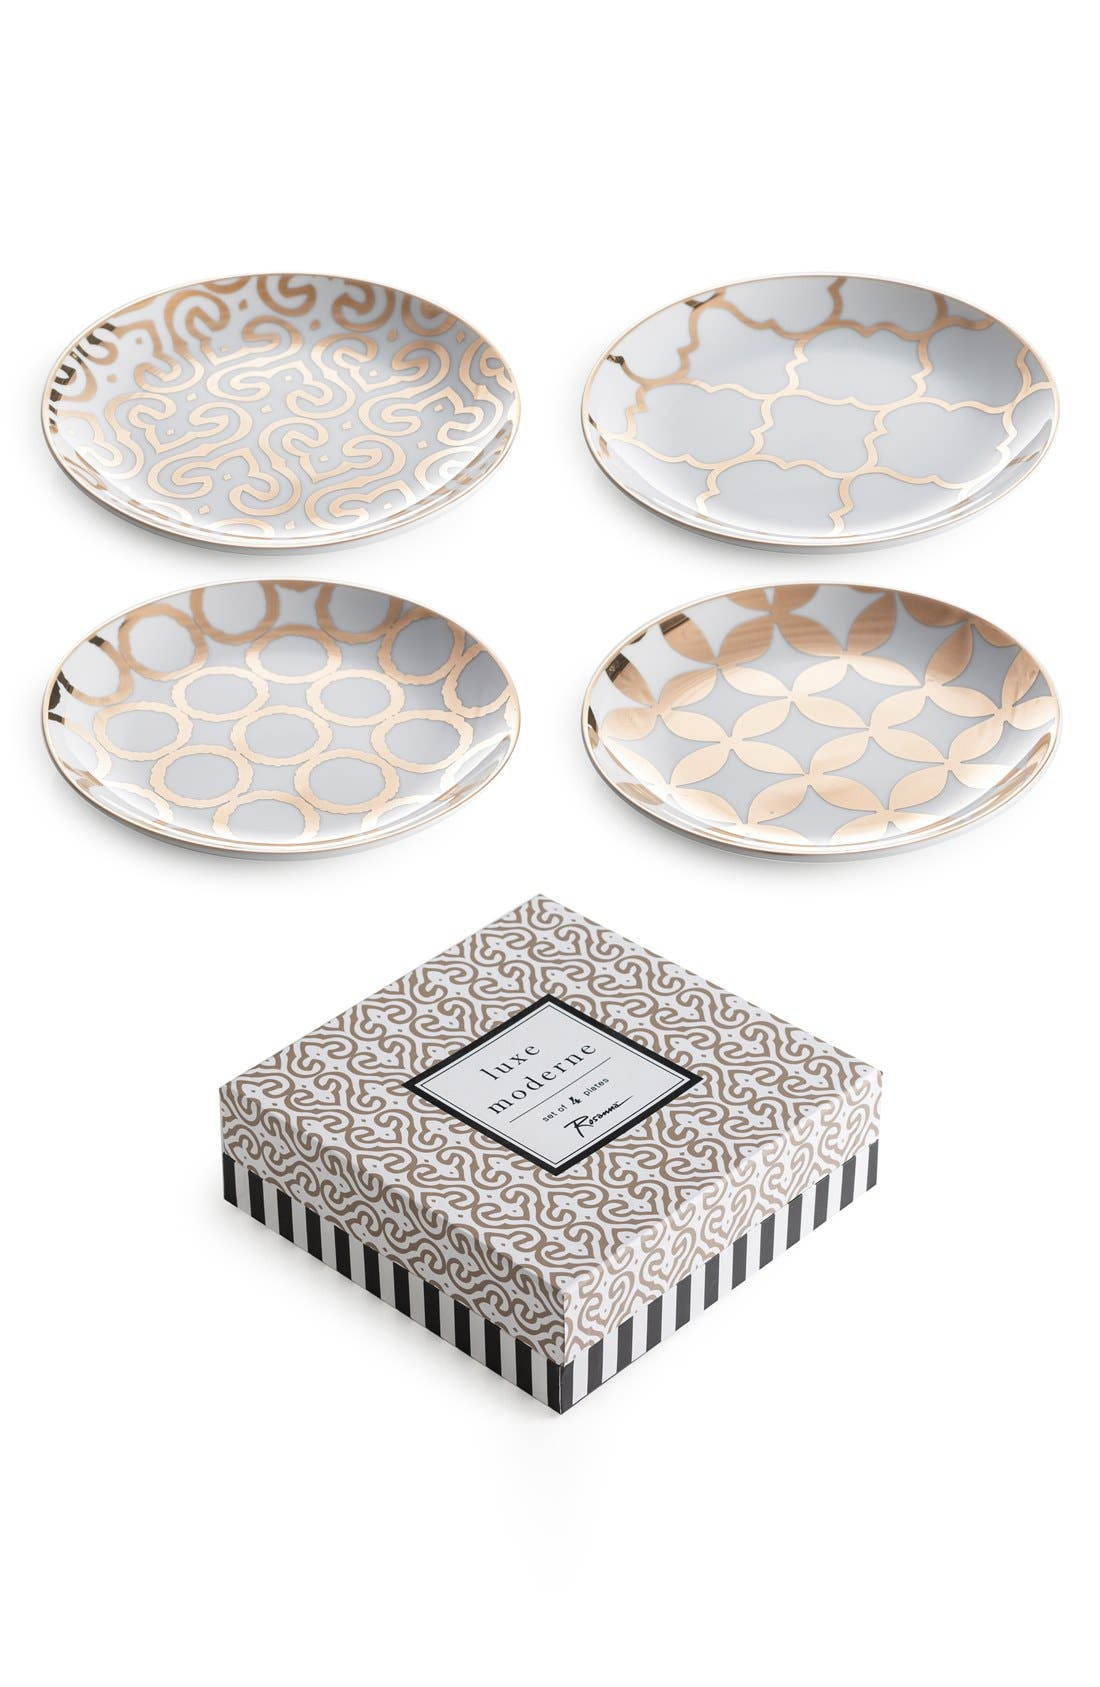 Alternate Image 1 Selected - Rosanna 'Luxe Moderne' Appetizer Plates (Set of 4)